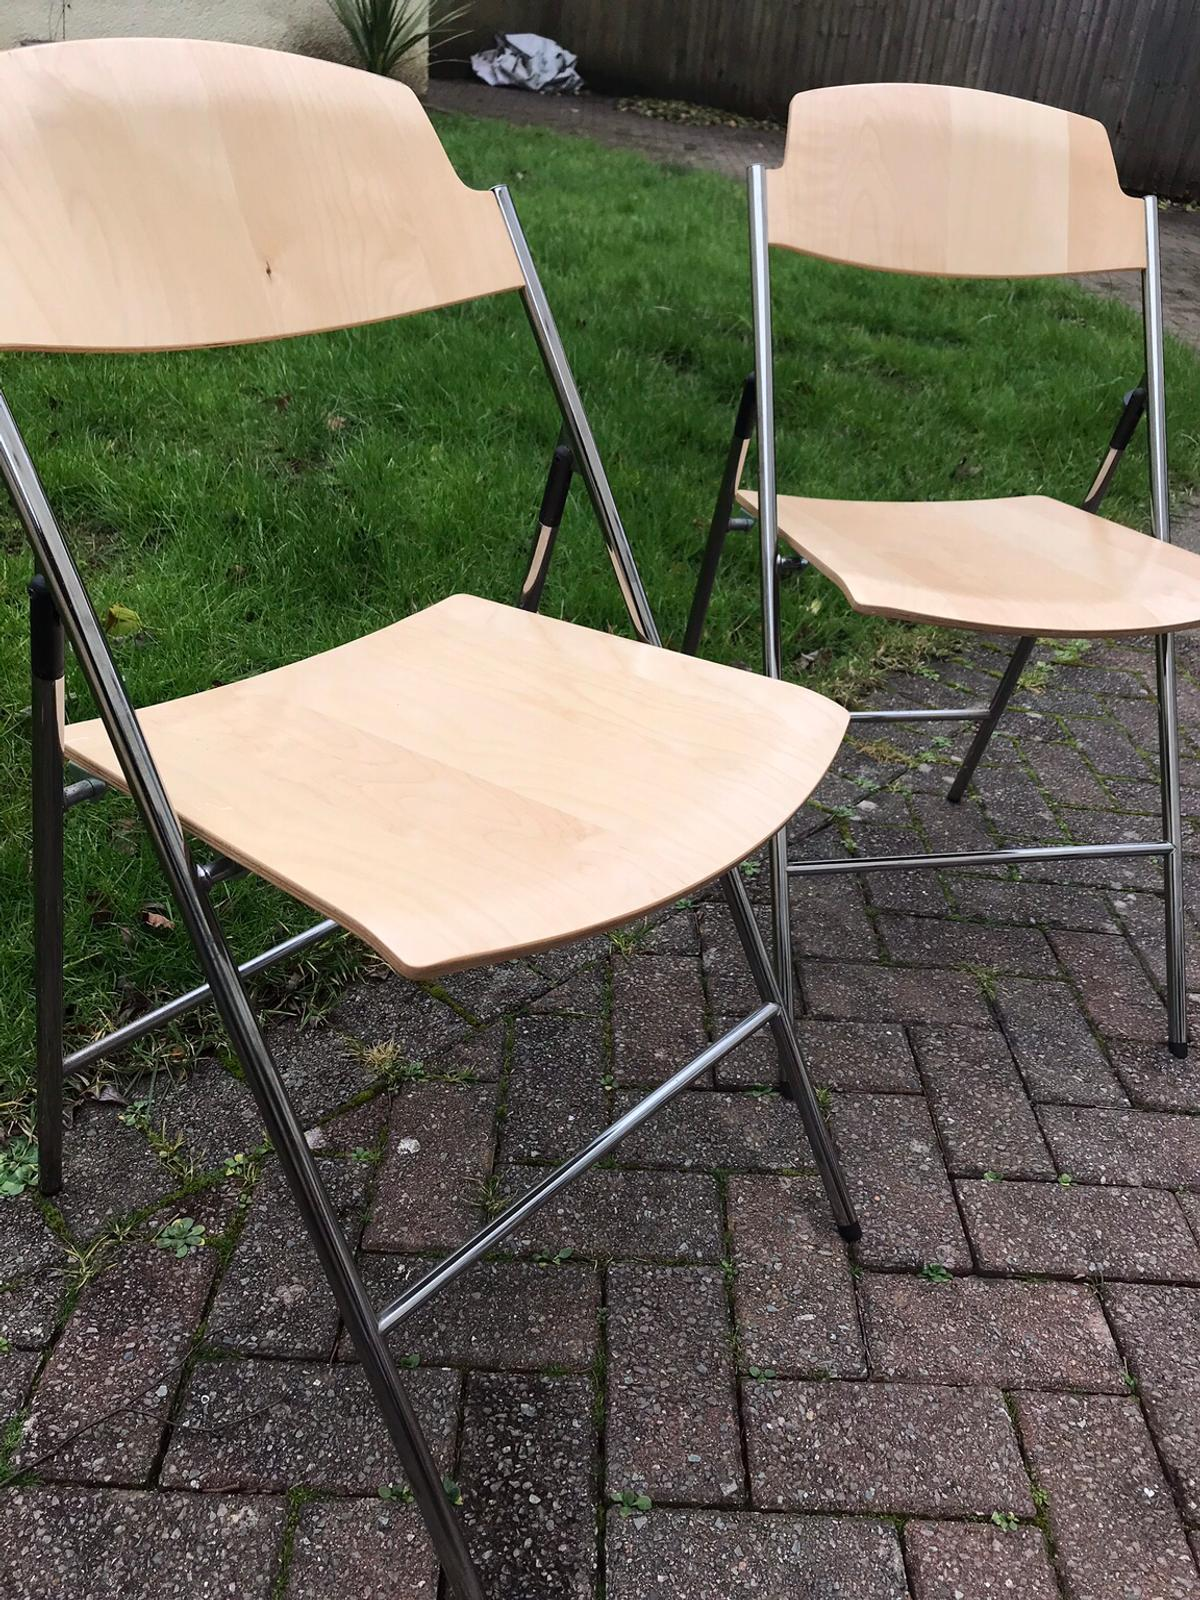 4 Ikea Edgar Folding Chairs In Killay For 20 00 For Sale Shpock